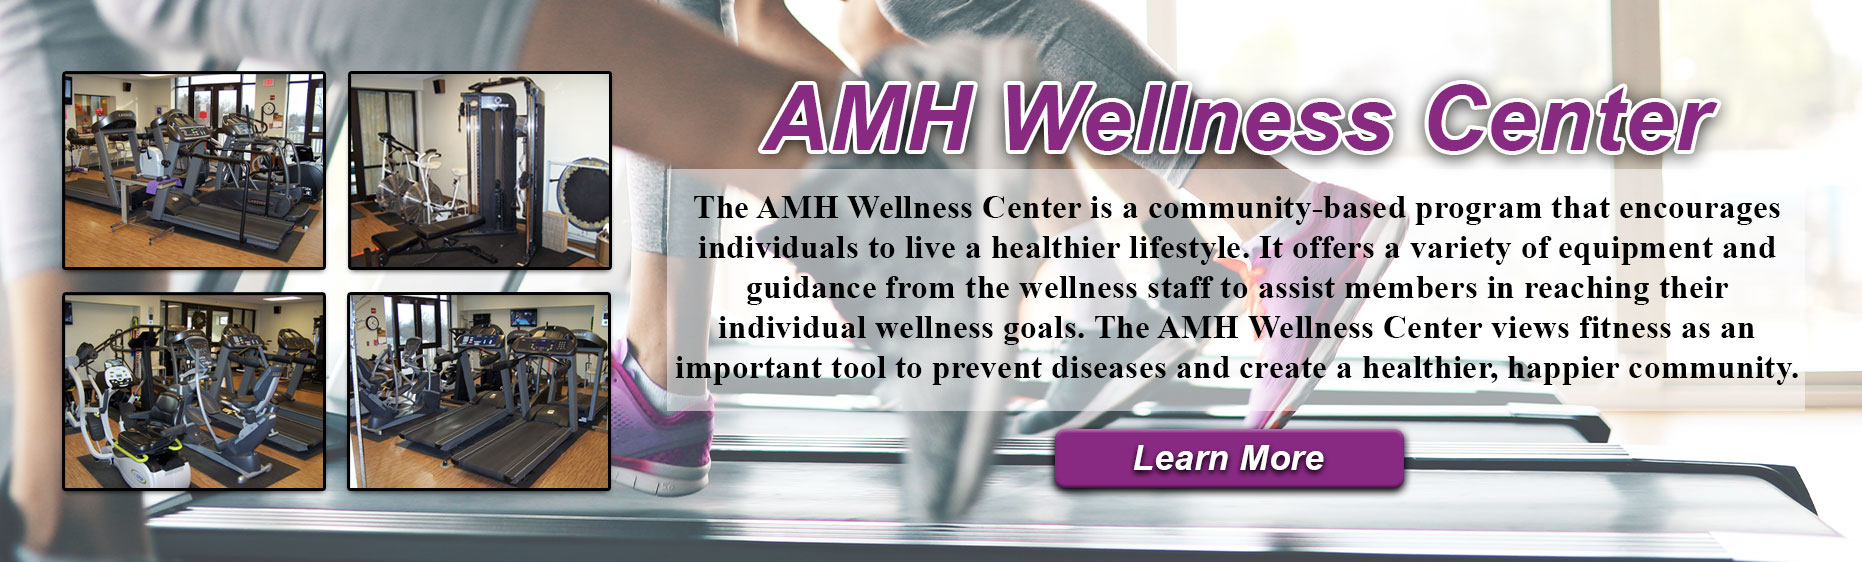 AMH Wellness Center. The AMH wellness center is a community-based program that encourages individuals to live a healthier lifestyl. IT offers a variety of equipment and guidance from the wellness staff to assist members in reaching their individual wellness goals. The AMH wellness center views fitness as an important tool to prevent diseases and create a healthier, happier community.